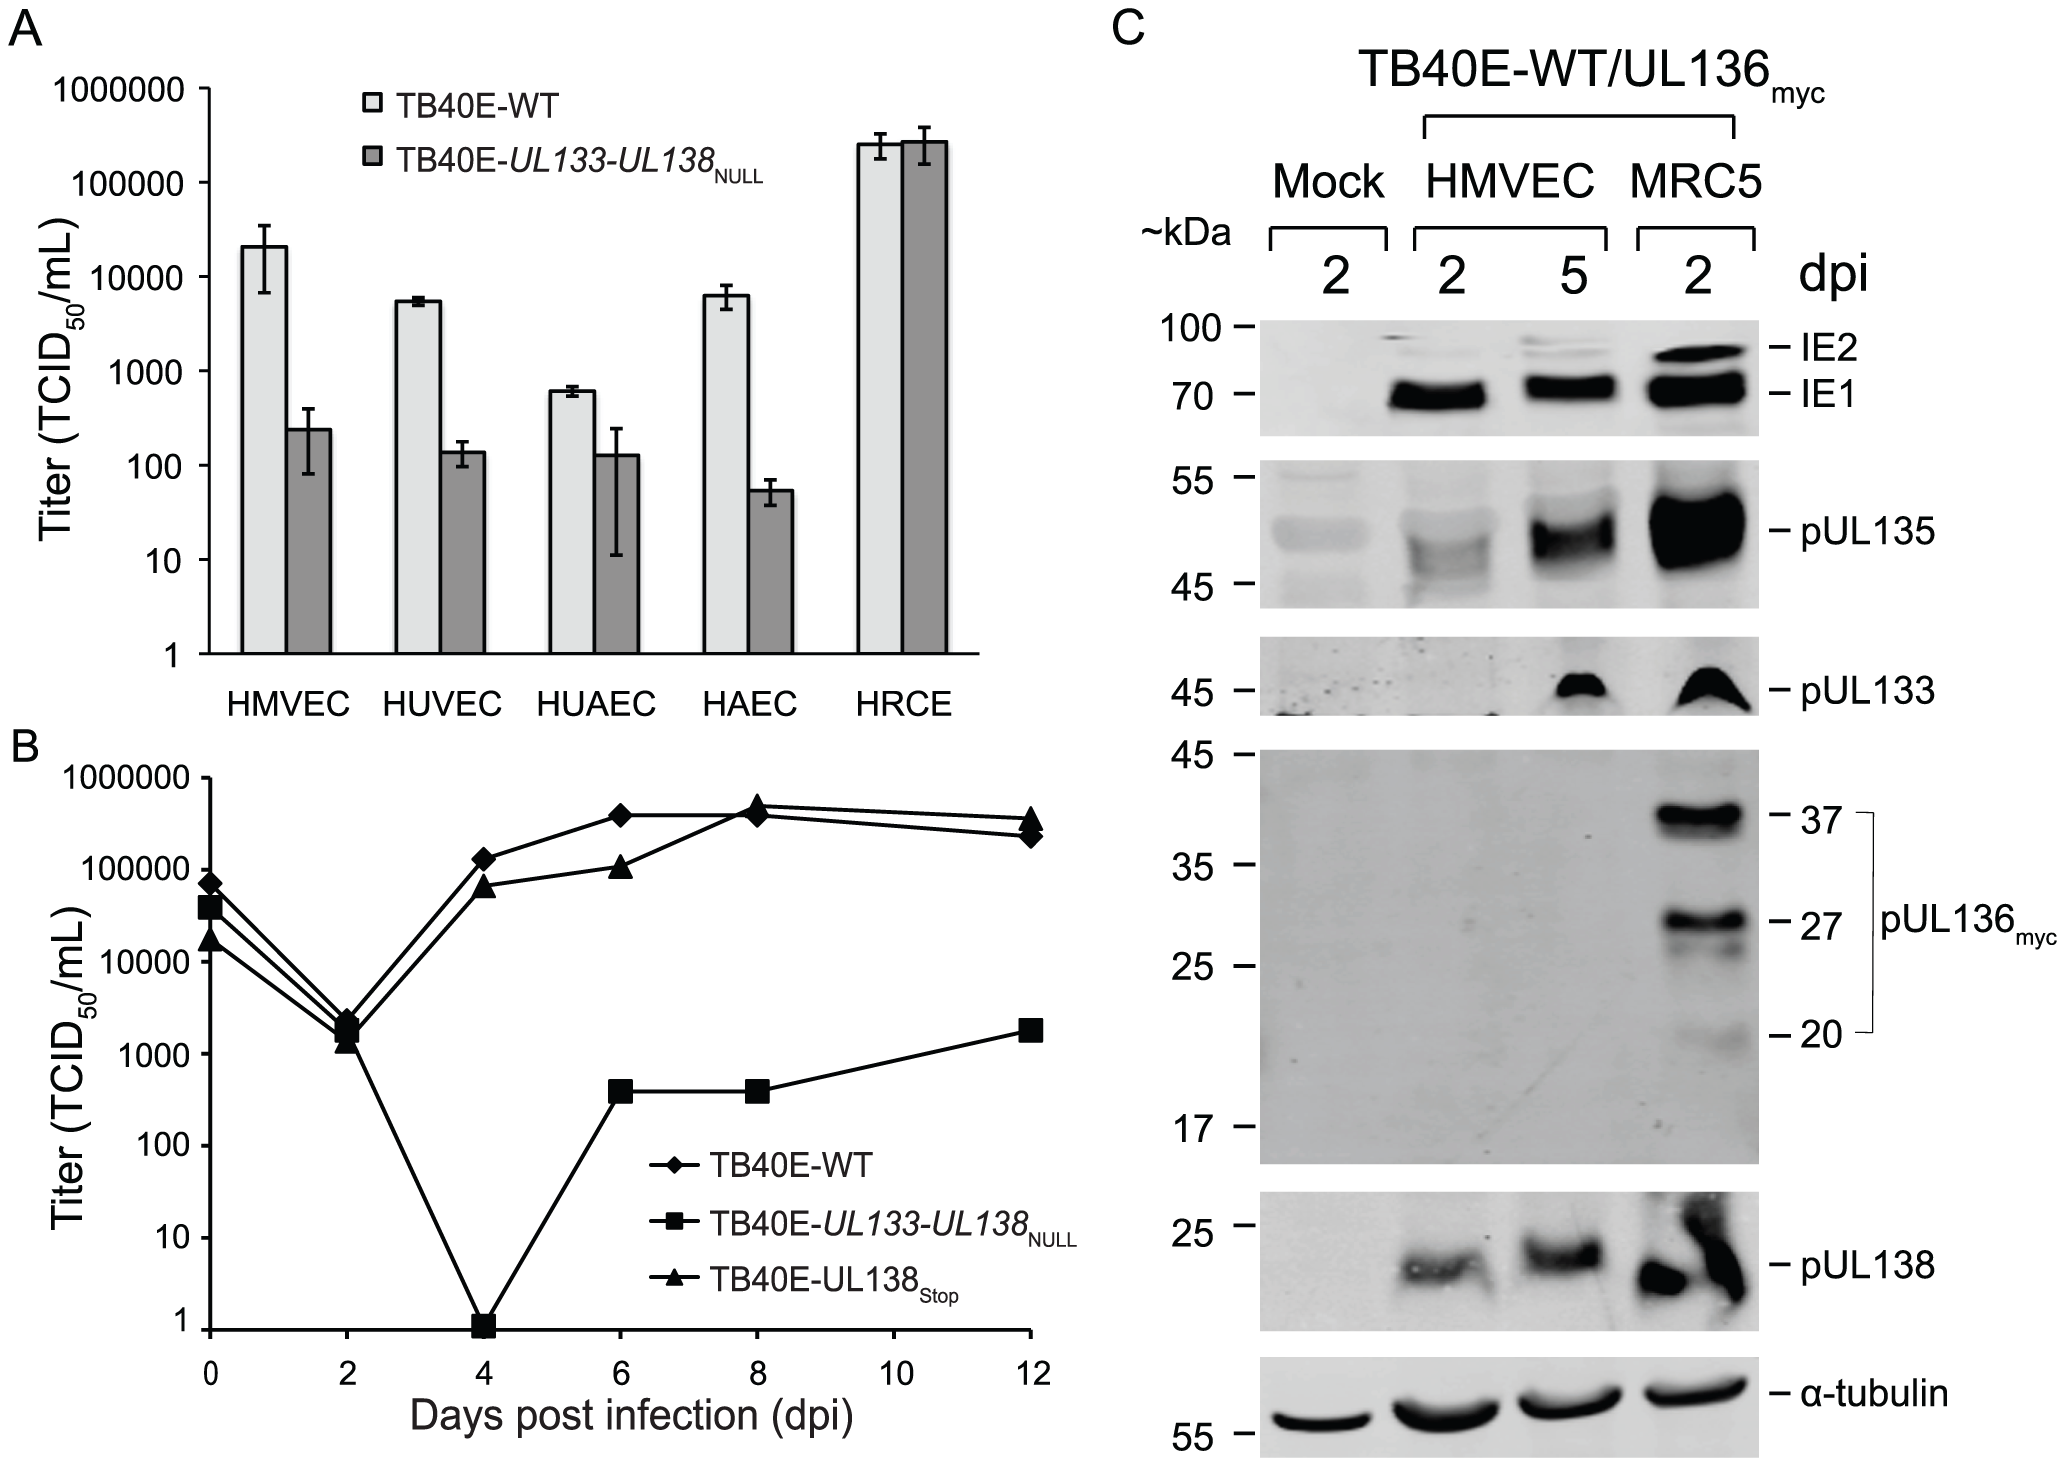 Expression and function of <i>UL133-UL138</i> locus in primary endothelial cells.